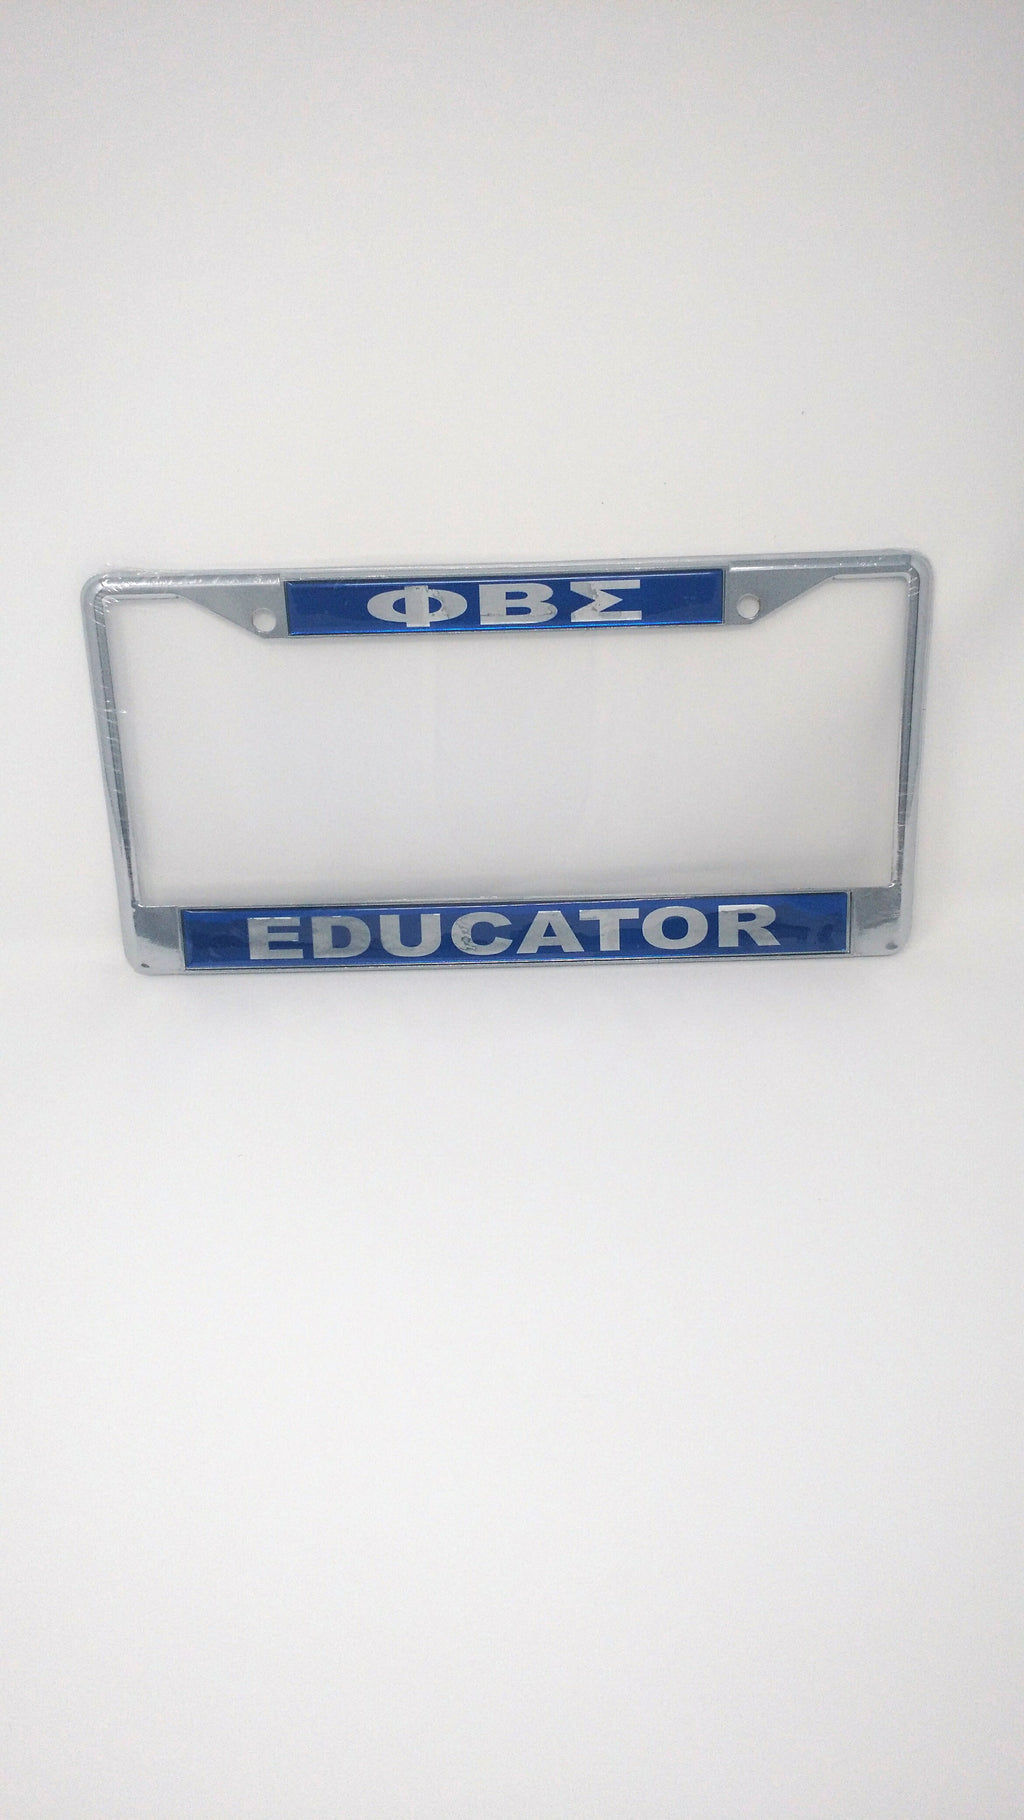 Phi Beta Sigma Educator License Plate Frame